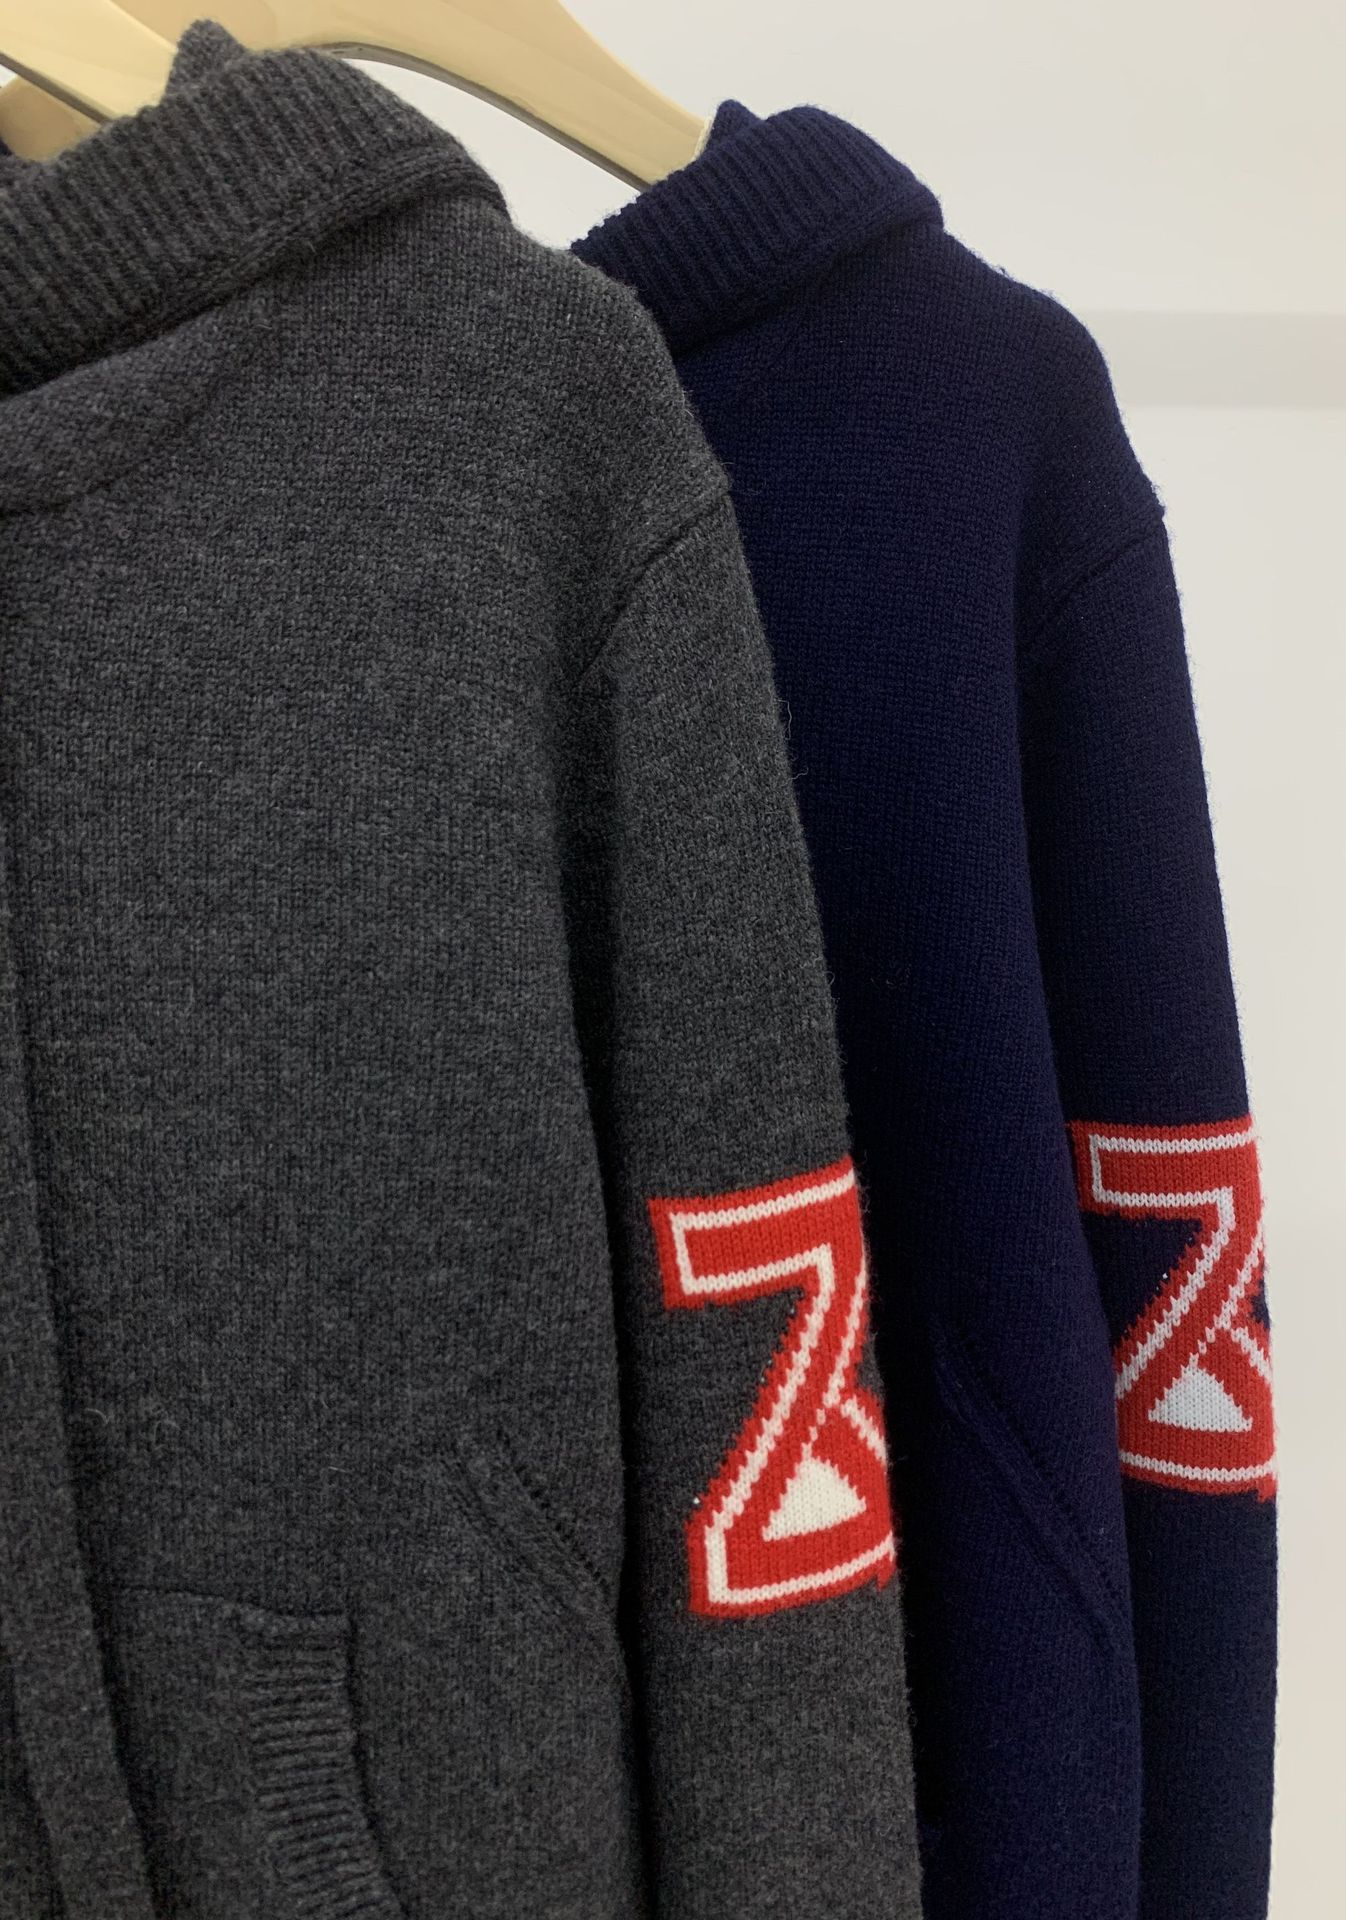 2021 Autumn and Winter New Hooded Pocket Arm Alphabet Design Cashmere Knitted Sweater Girl enlarge